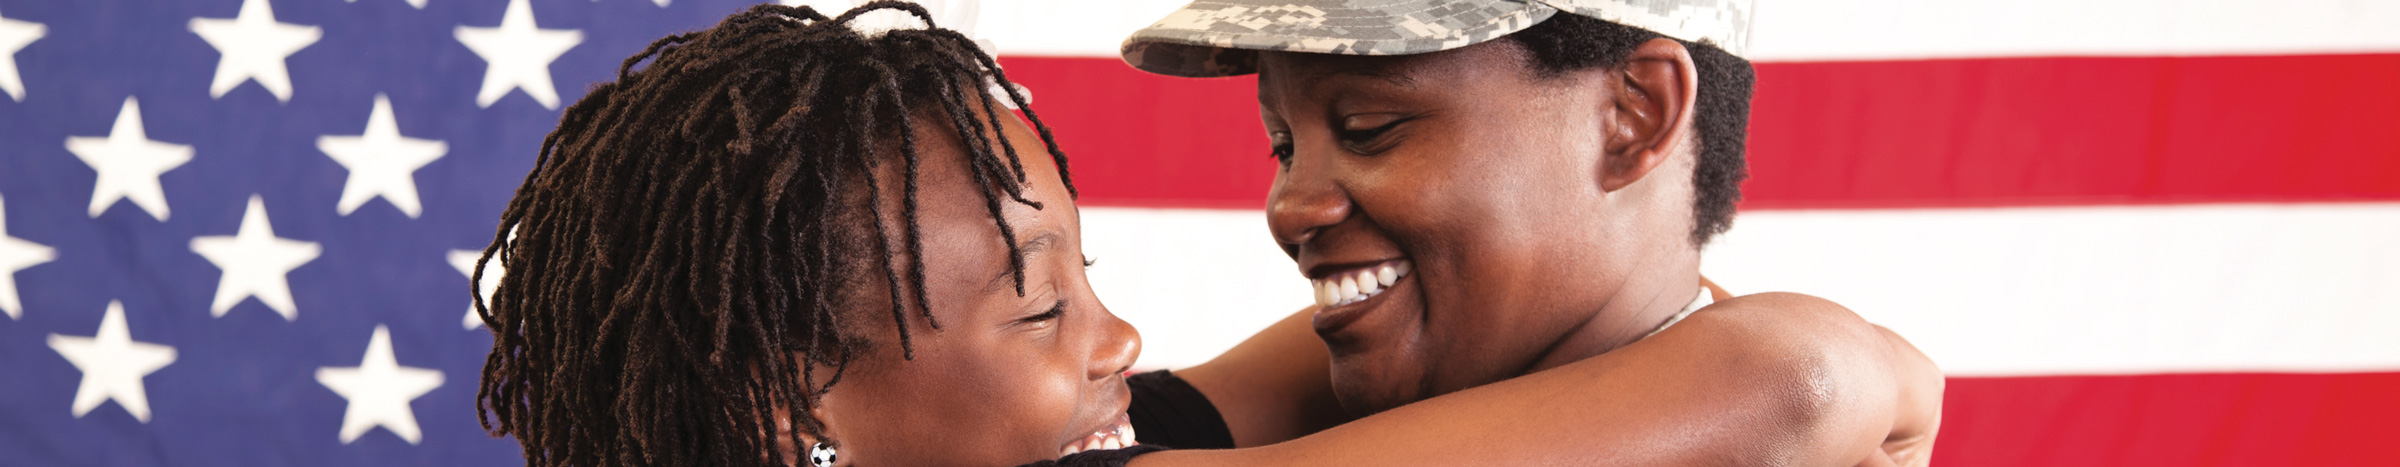 Veteran woman hugs girl in front of the American flag.